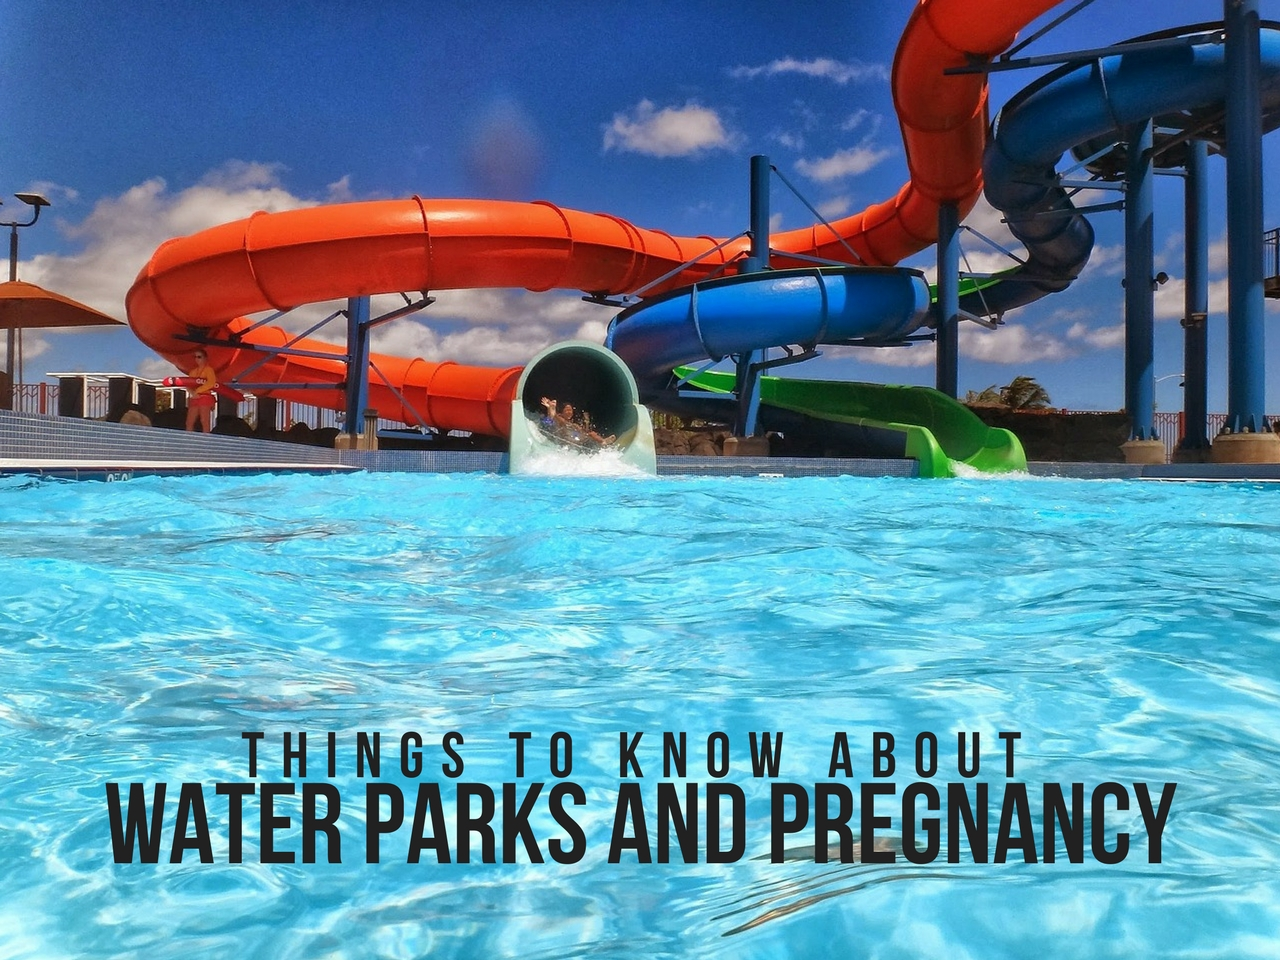 THINGS TO KNOW ABOUT WATER PARKS AND PREGNANCY